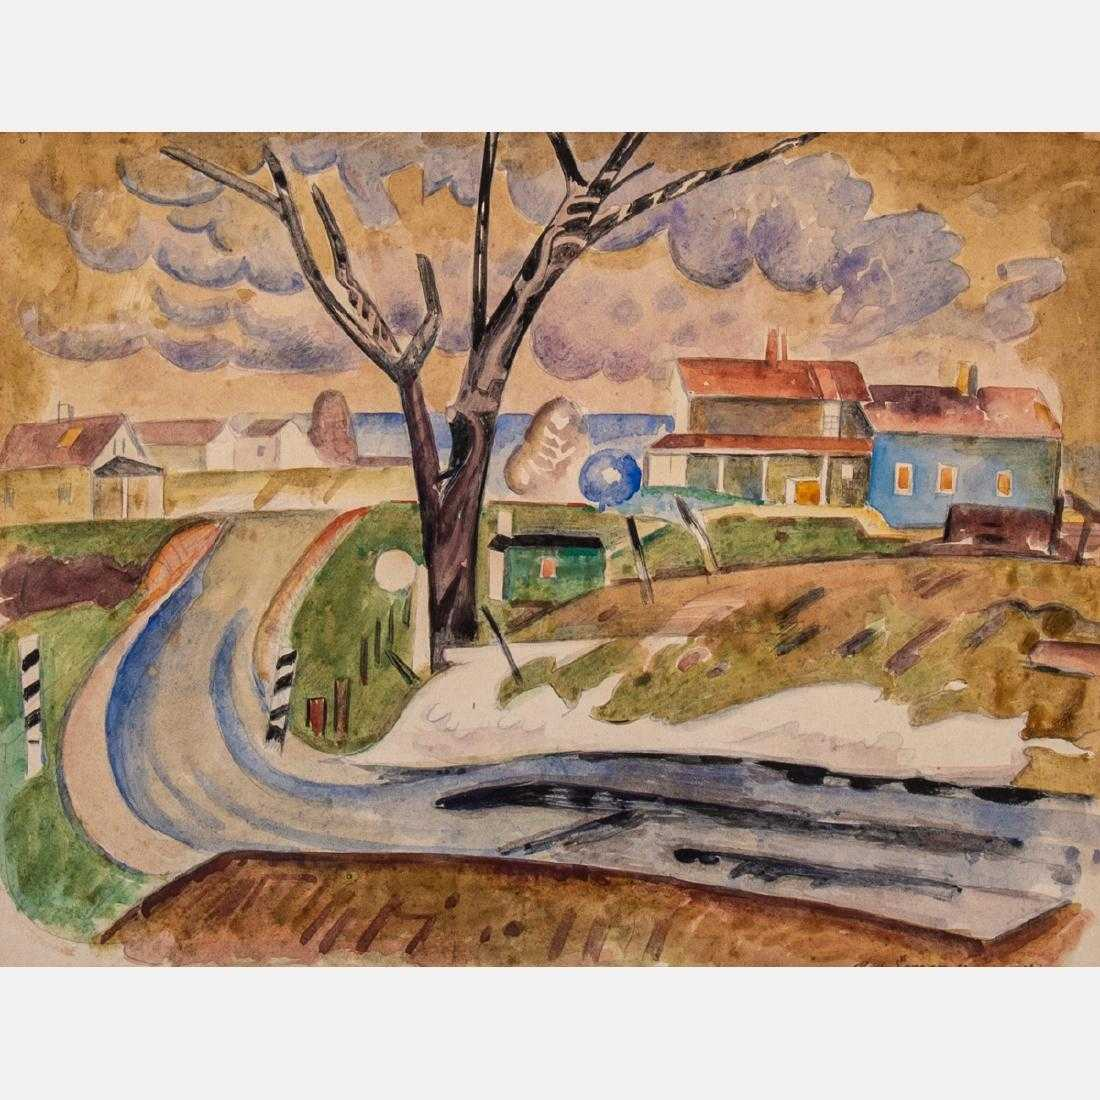 Watercolor by the American Modernist painter William Sommer (1867-1949), titled Landscape with Houses, signed lower right (est. $3,000-$5,000).